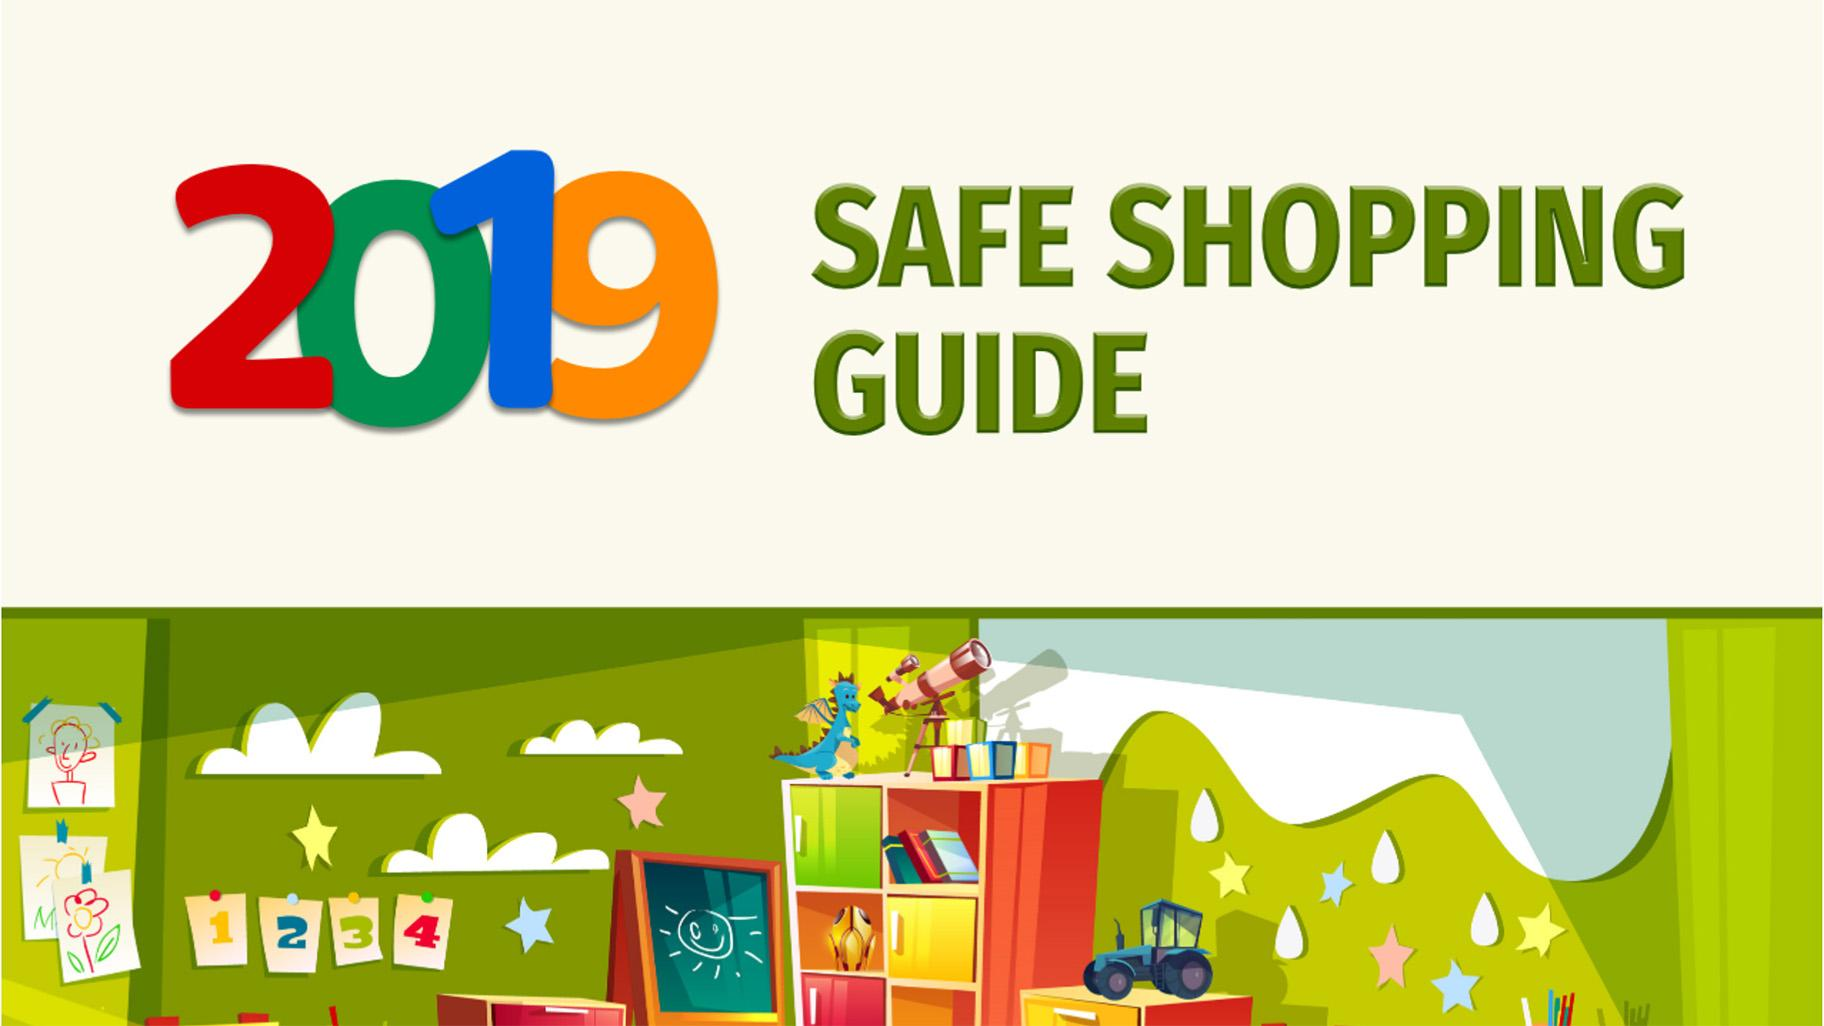 Document: Open the 2019 Safe Shopping Guide